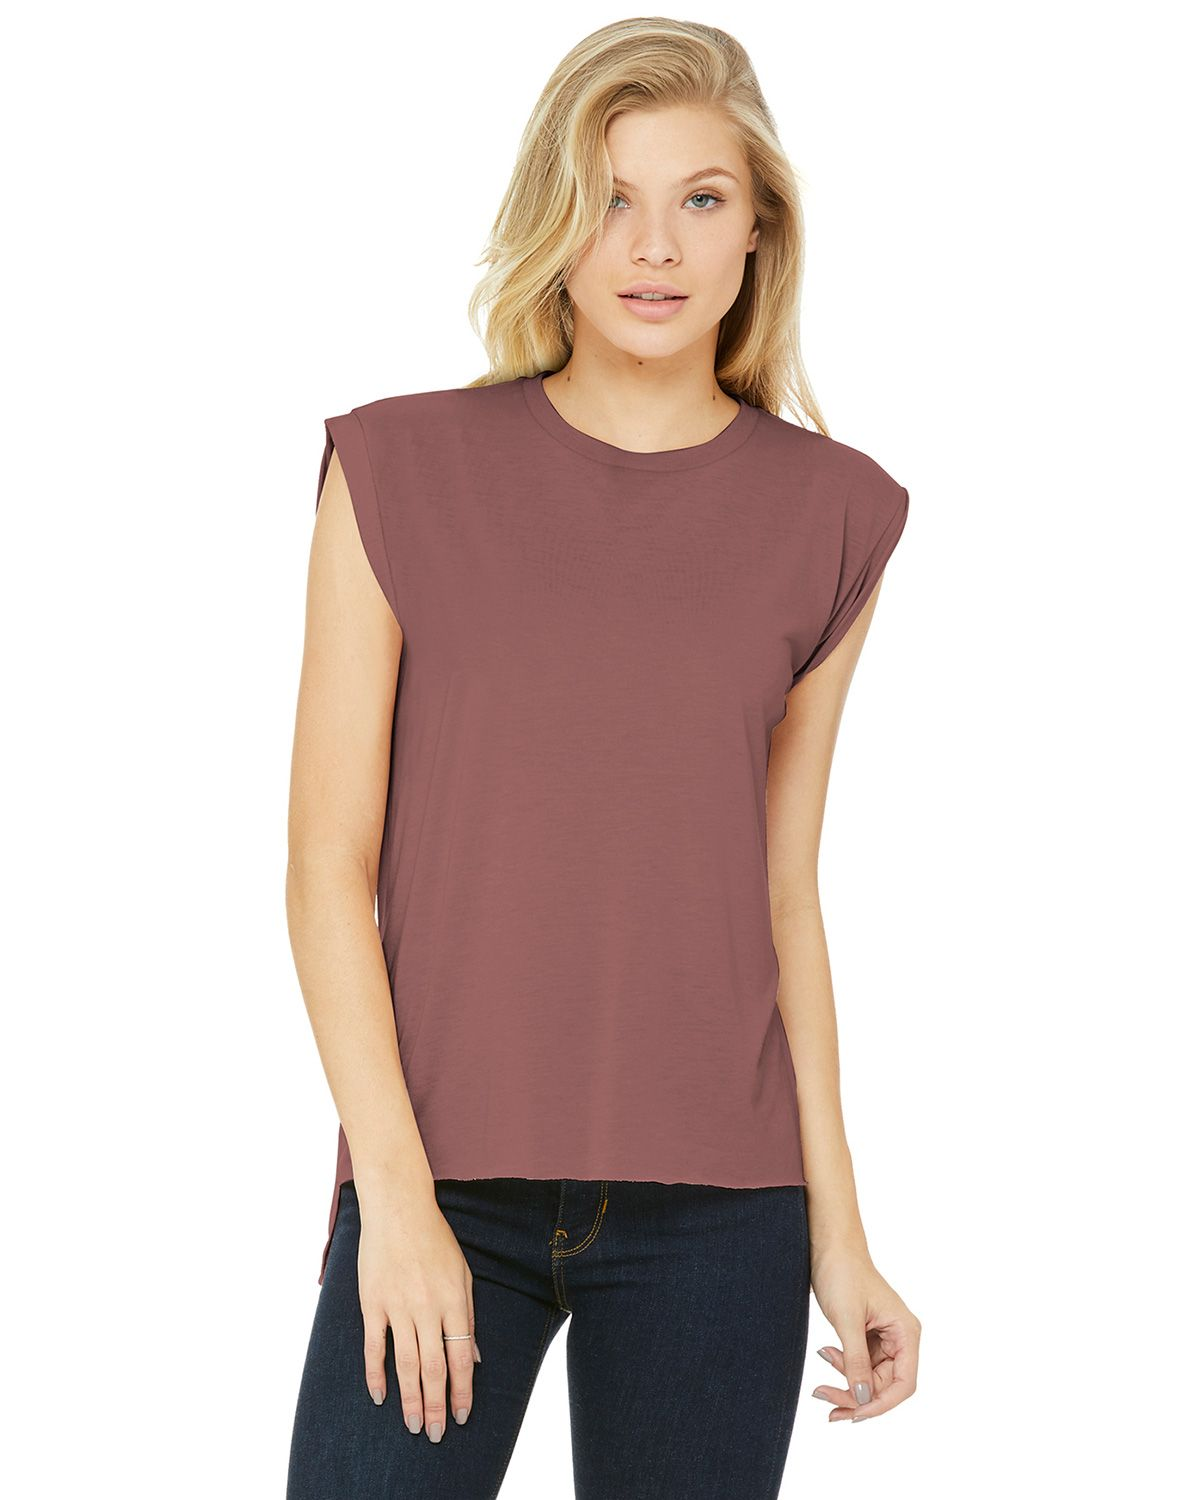 Bella + Canvas BC8804 Women's Flowy Muscle Tee - Mauve - S from Bella + Canvas